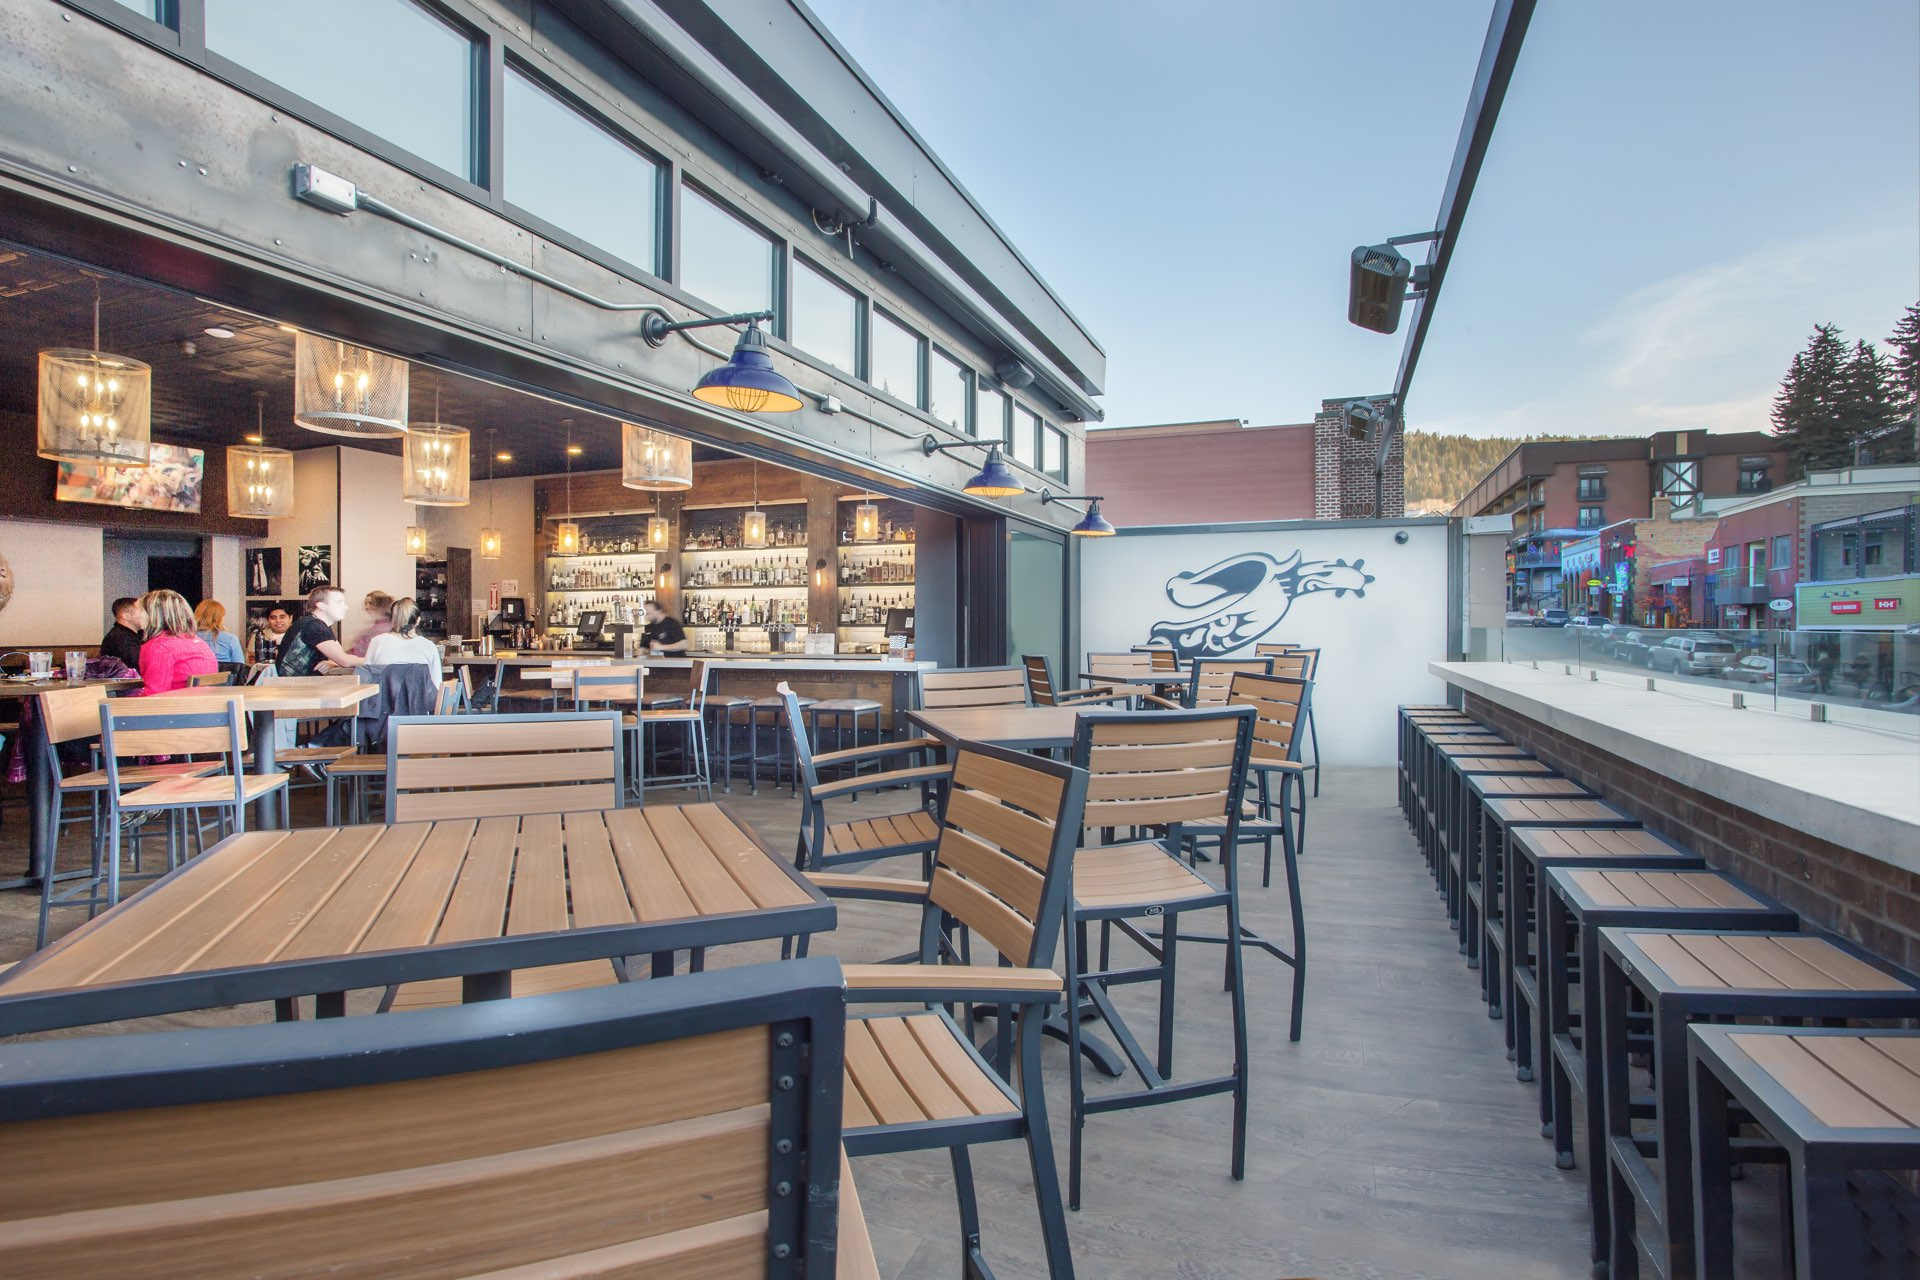 Patio, The Spur Bar and Grill, architectural design by Elliott Workgroup